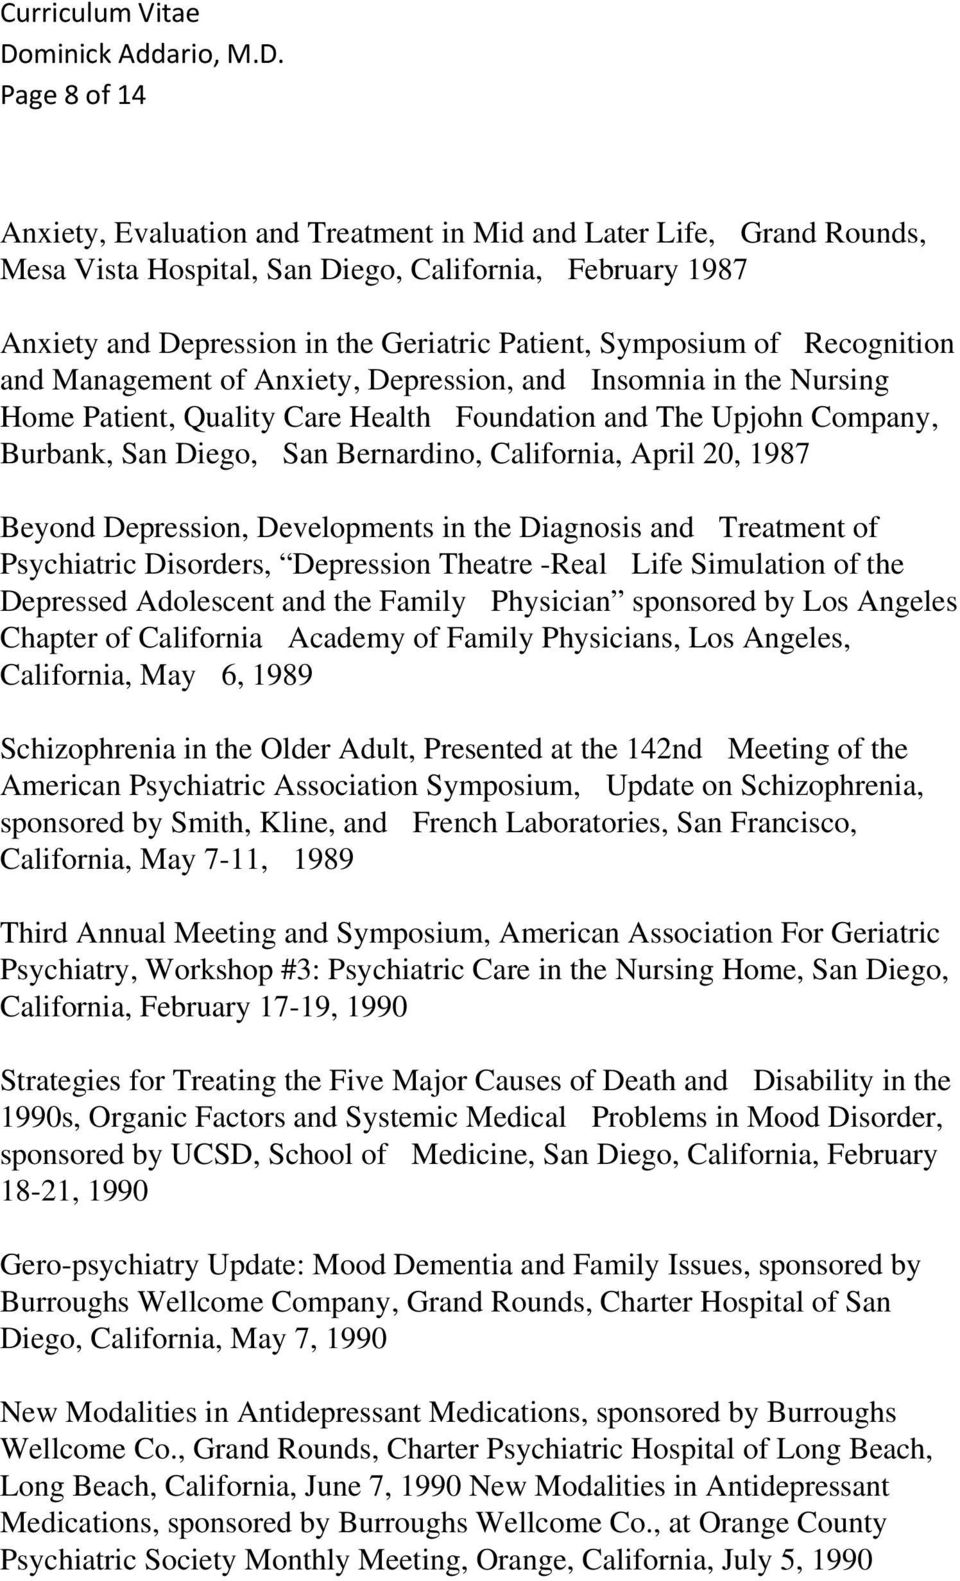 California, April 20, 1987 Beyond Depression, Developments in the Diagnosis and Treatment of Psychiatric Disorders, Depression Theatre -Real Life Simulation of the Depressed Adolescent and the Family